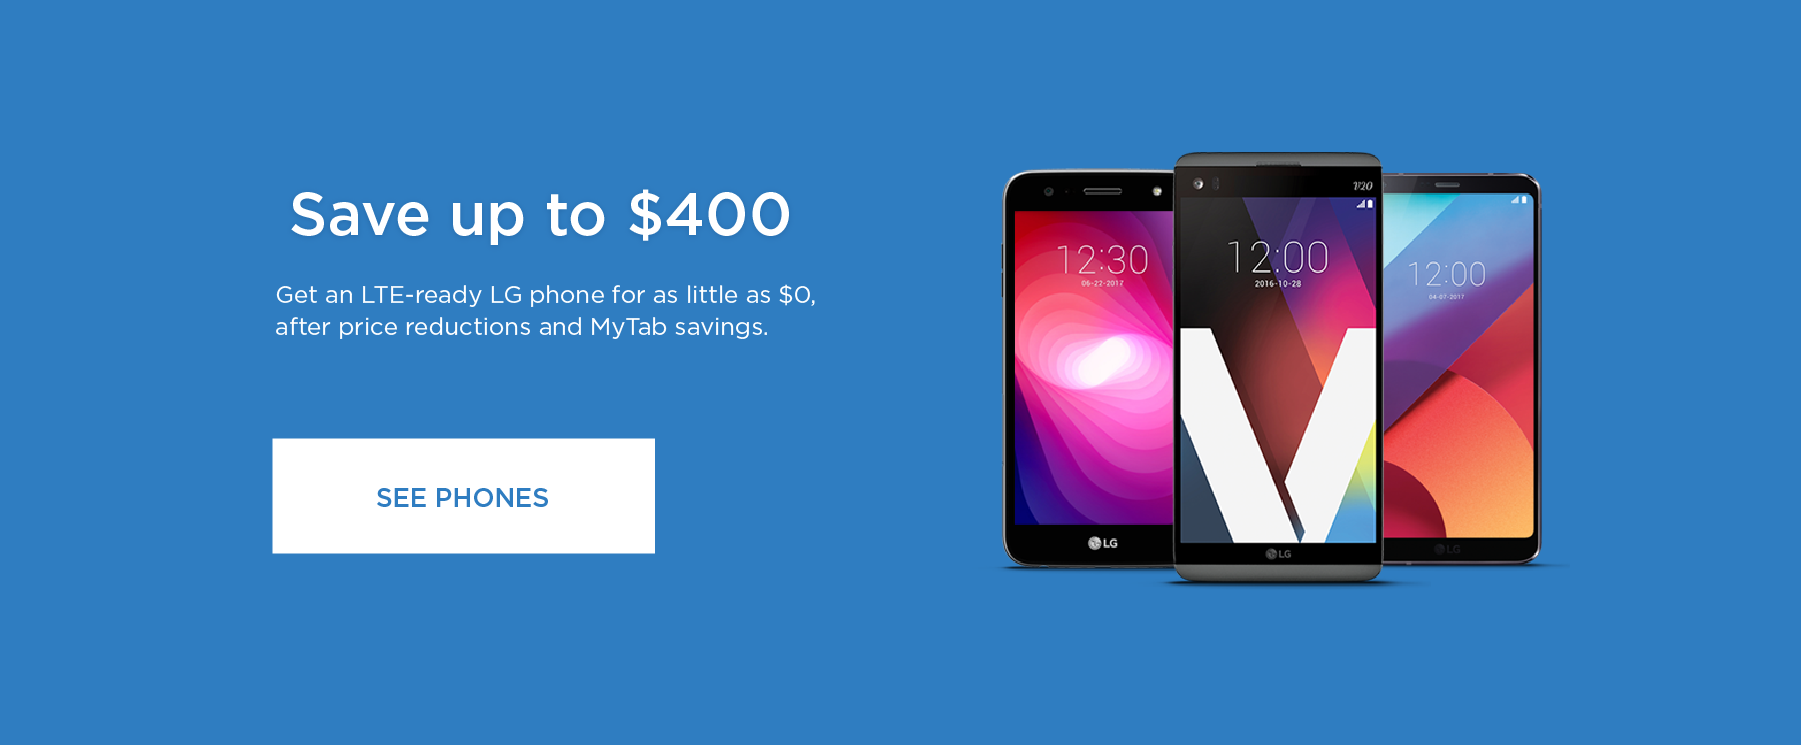 Save Up to $400 - LG LTE